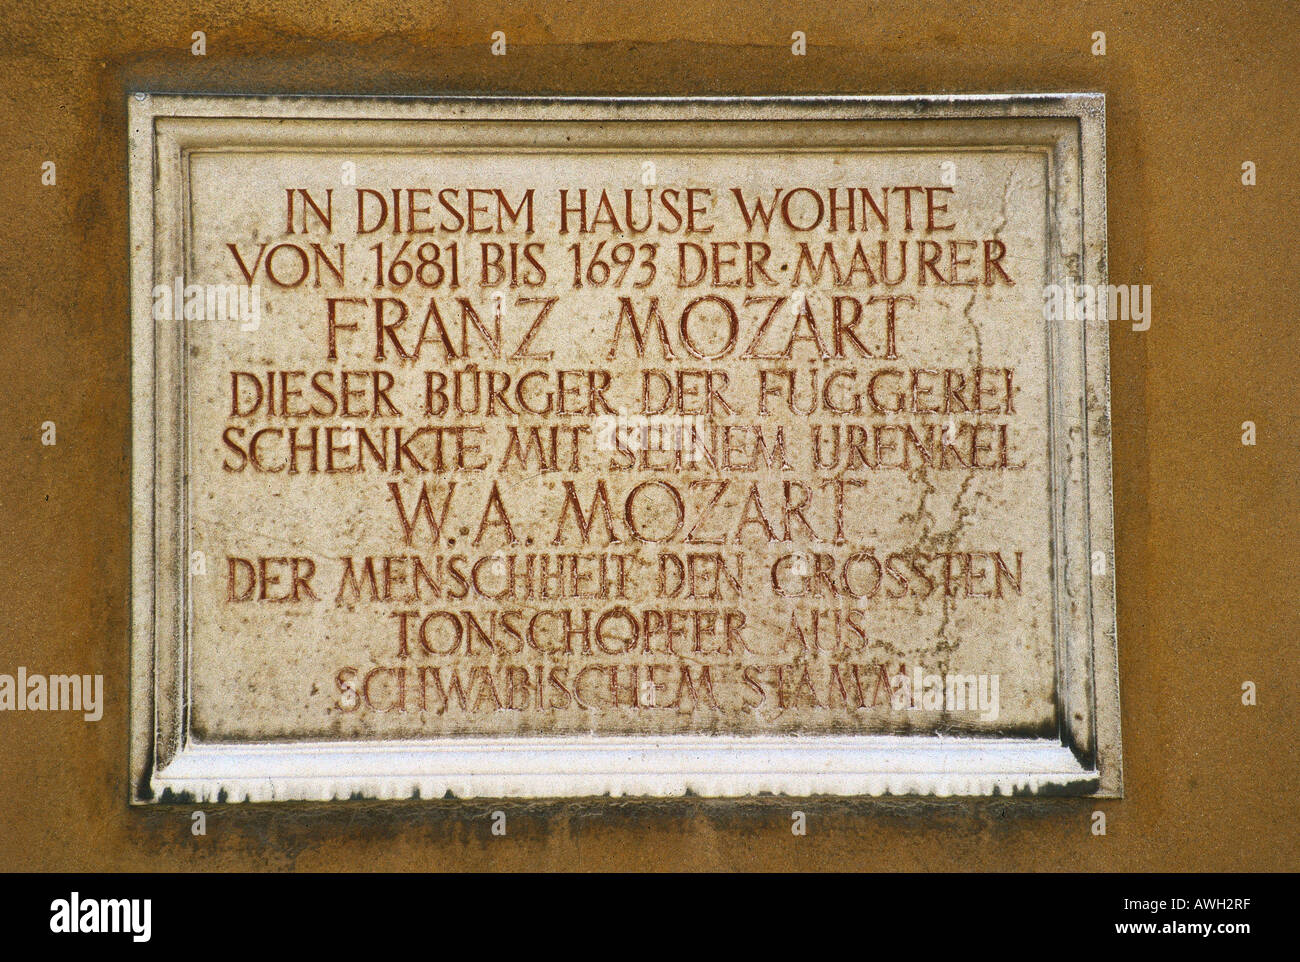 Germany, Bavaria, Northern Swabia, Augsburg, memorial plaque to Franz Mozart, one-time resident of the Fuggerei - Stock Image